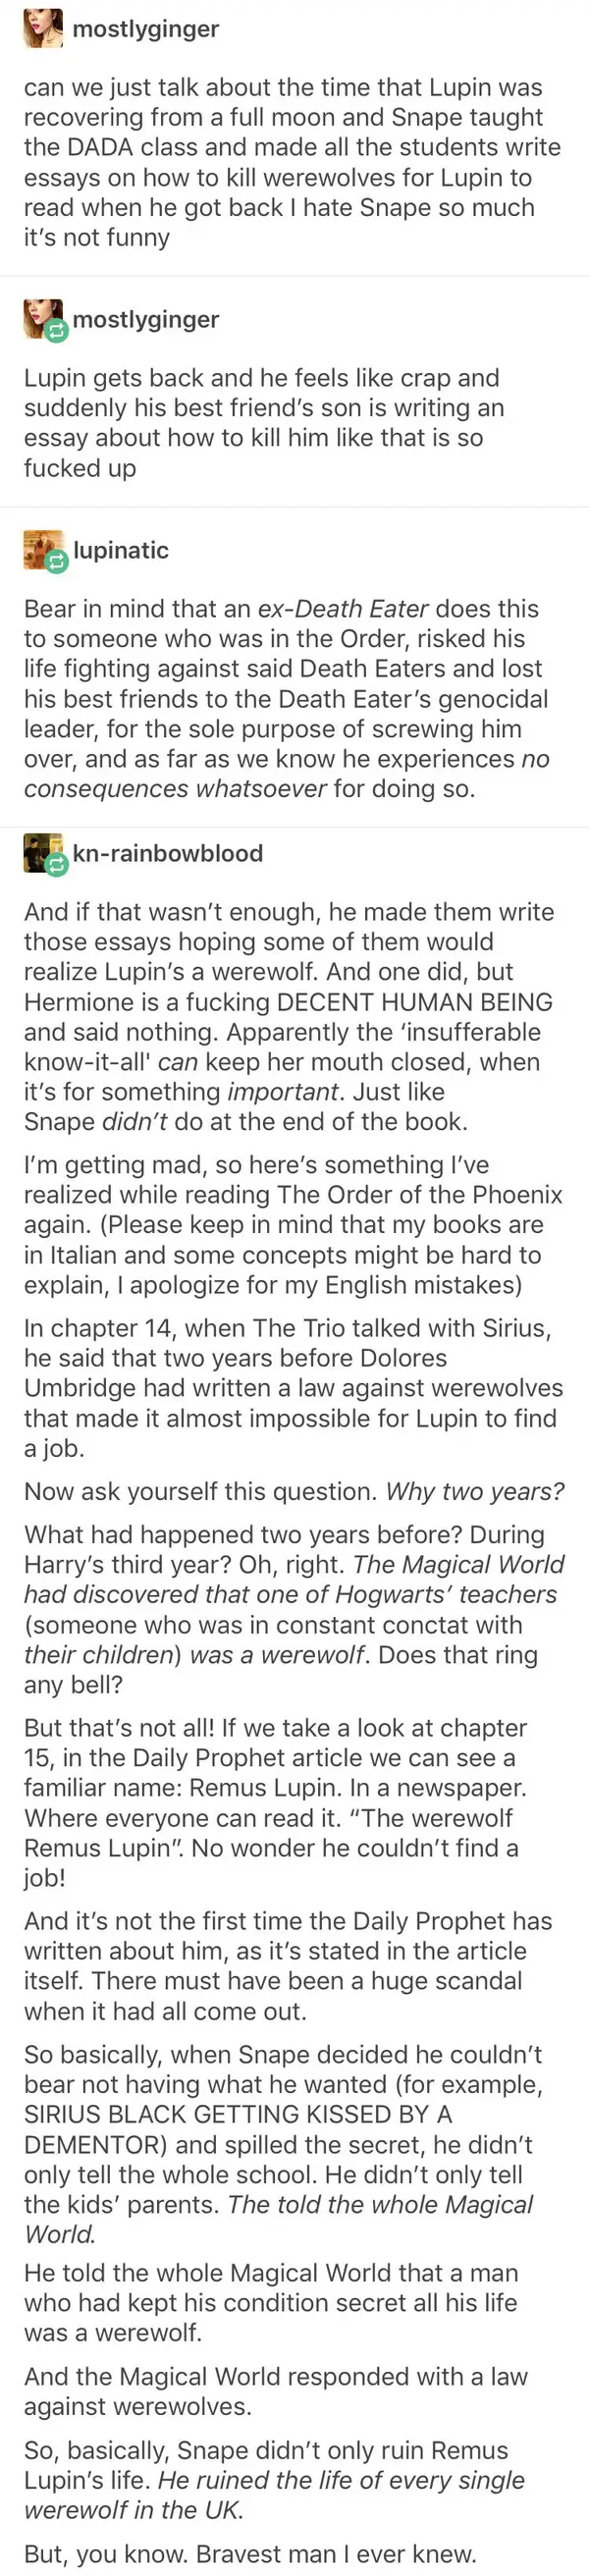 14 Times Tumblr Loved Harry Potter But Was SO FRUSTRATED By Harry Potter